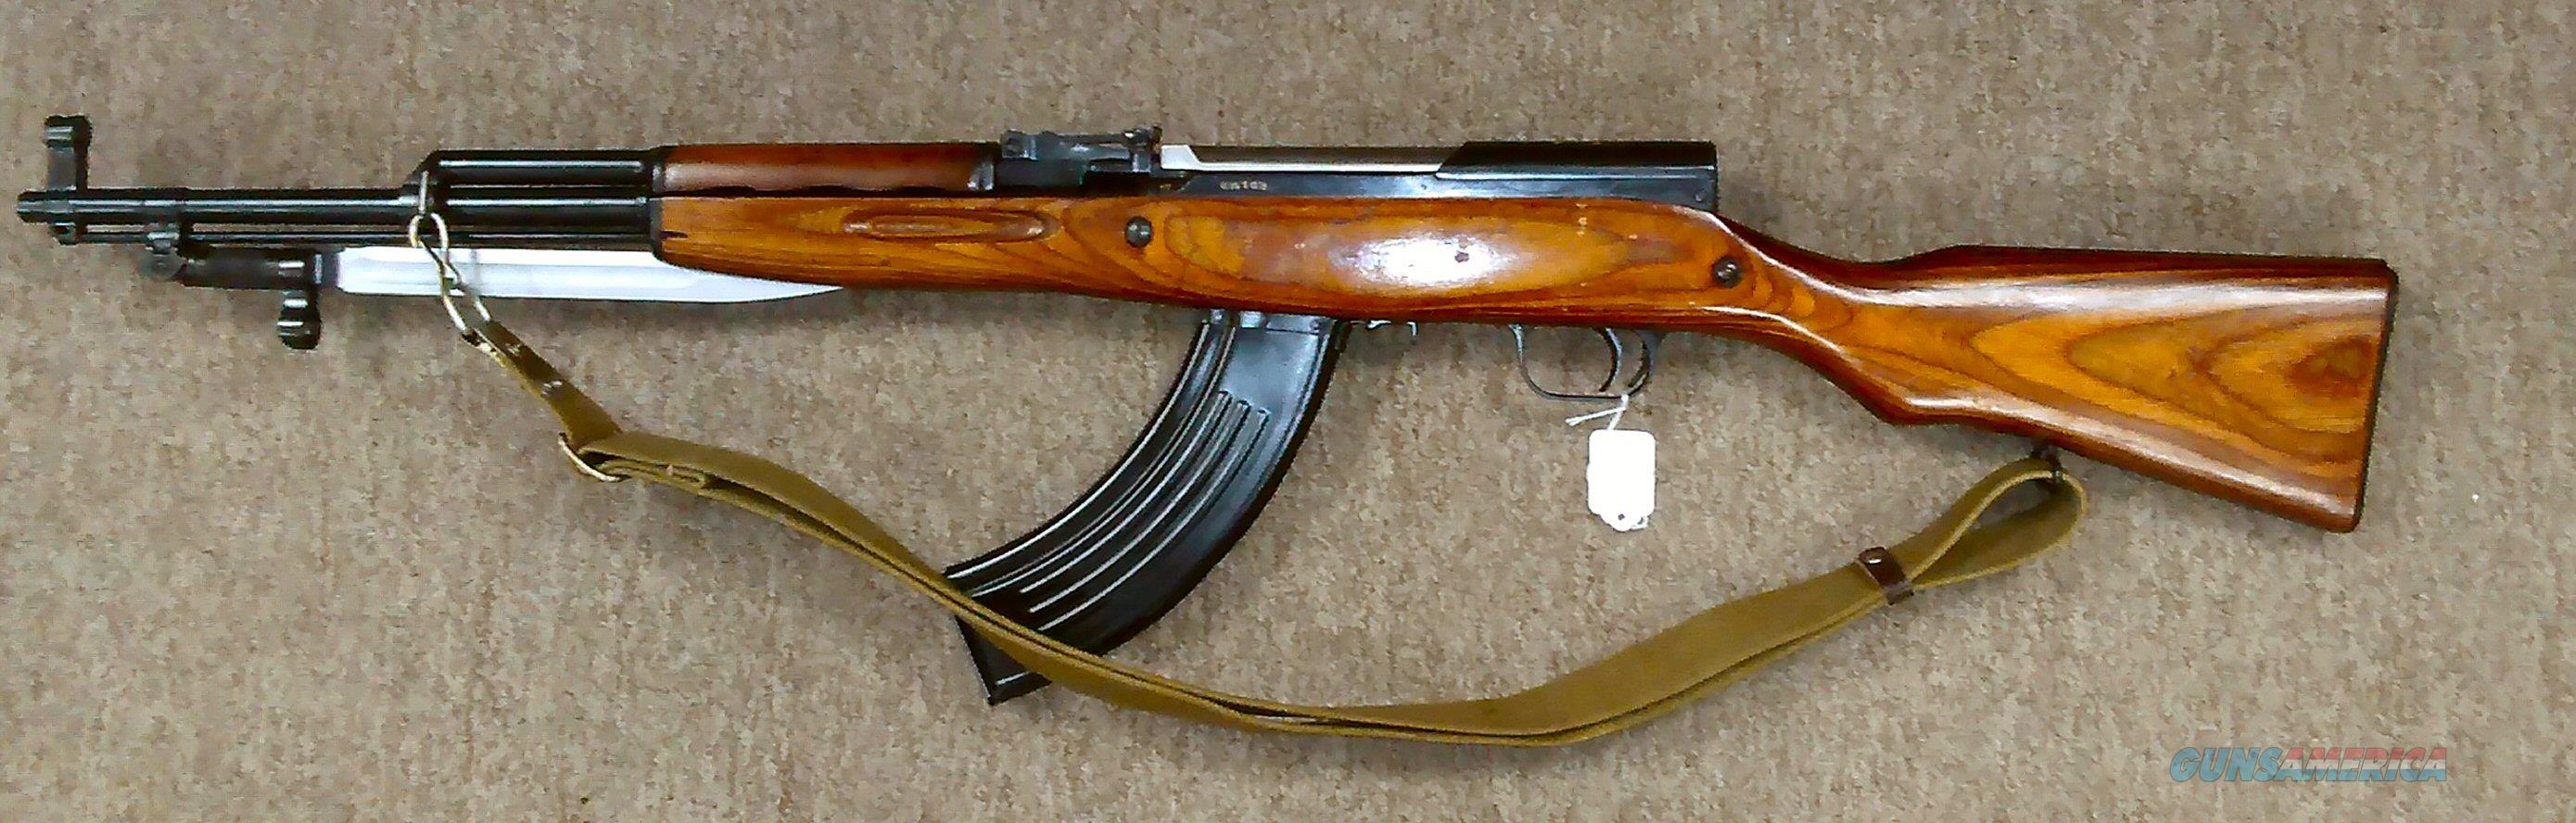 RUSSIAN SKS 1952 ALL MATCHING SERIAL NUMBERS